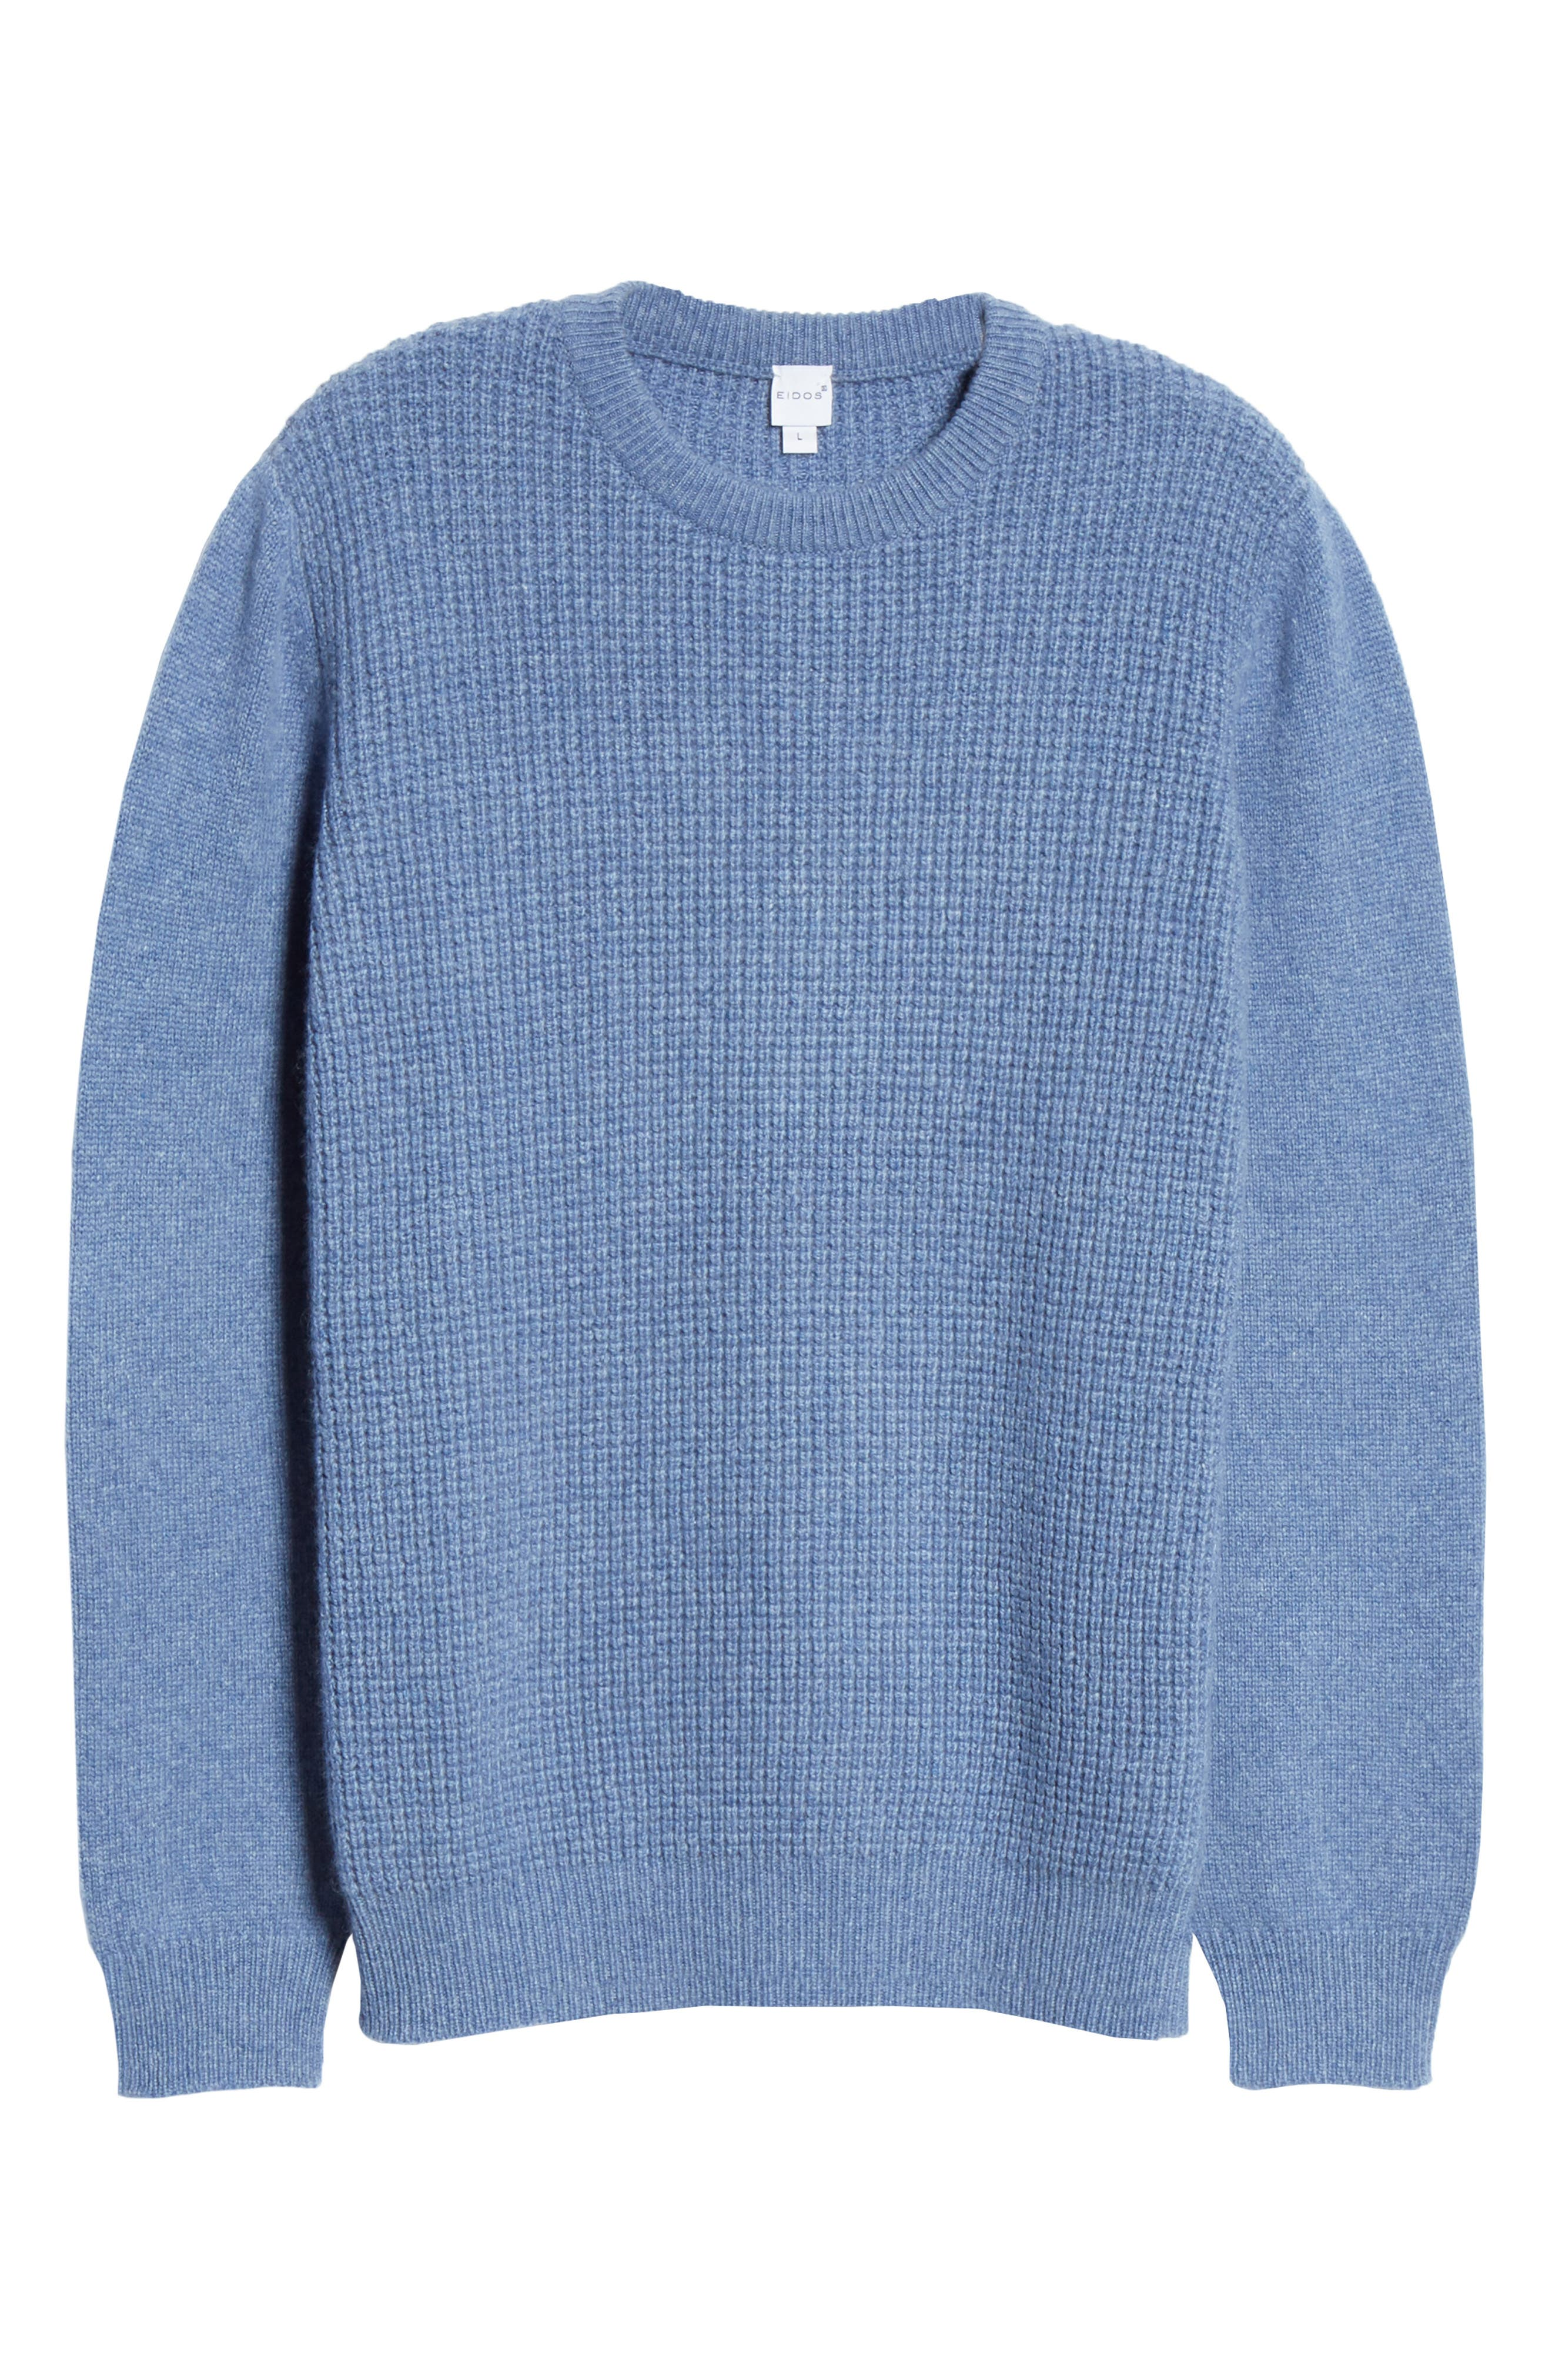 Waffle Knit Cashmere Crewneck Sweater,                             Alternate thumbnail 6, color,                             LIGHT BLUE